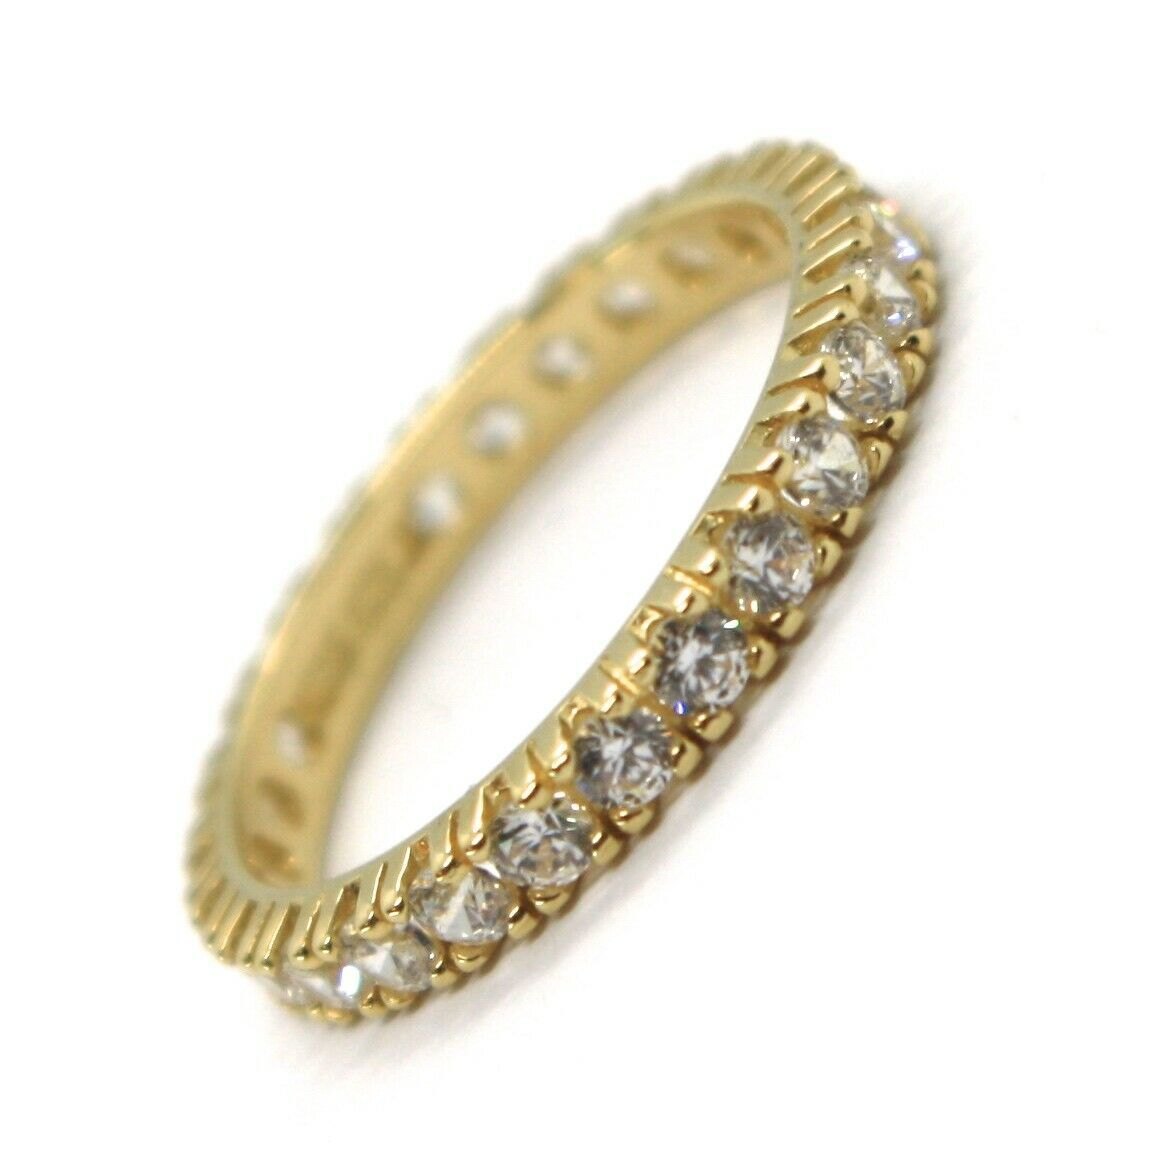 Yellow Gold Ring 750 18K, Eternity, 4 Tips, Thickness 3 mm, Zircon Cubic